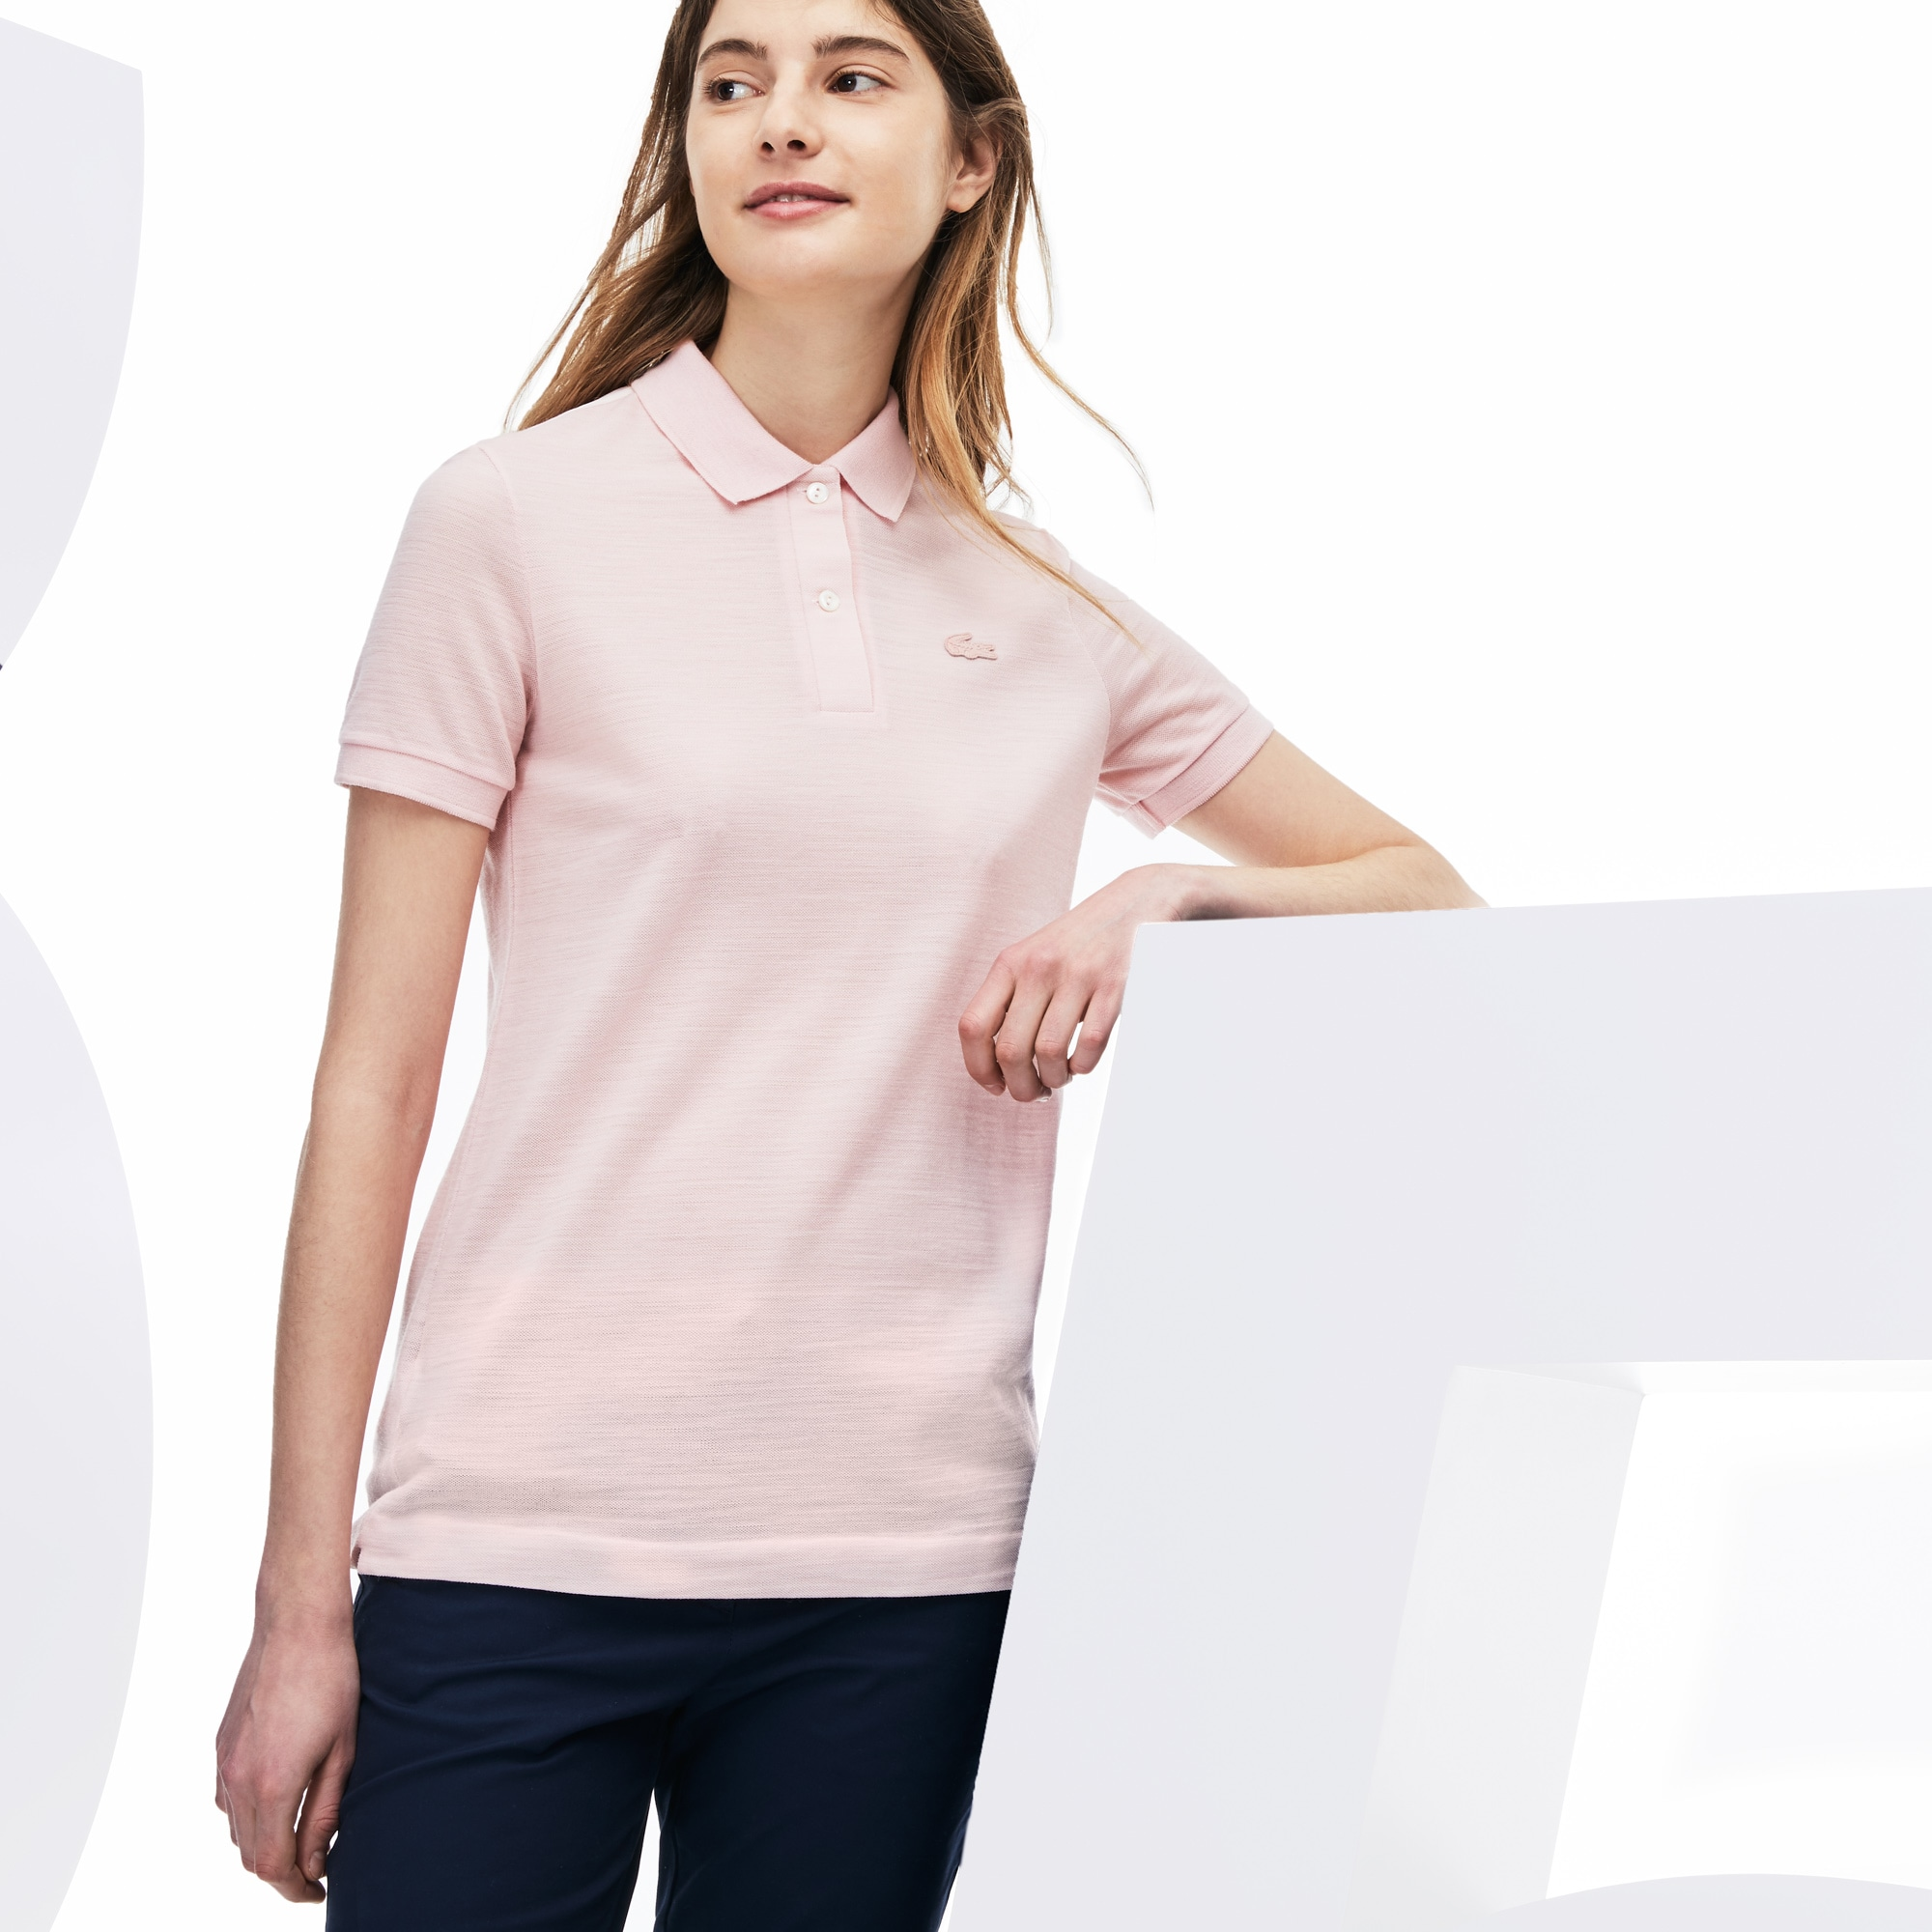 Women's Limited Edition Anniversaire 85 Ans Classic Fit Wool Piqué Polo